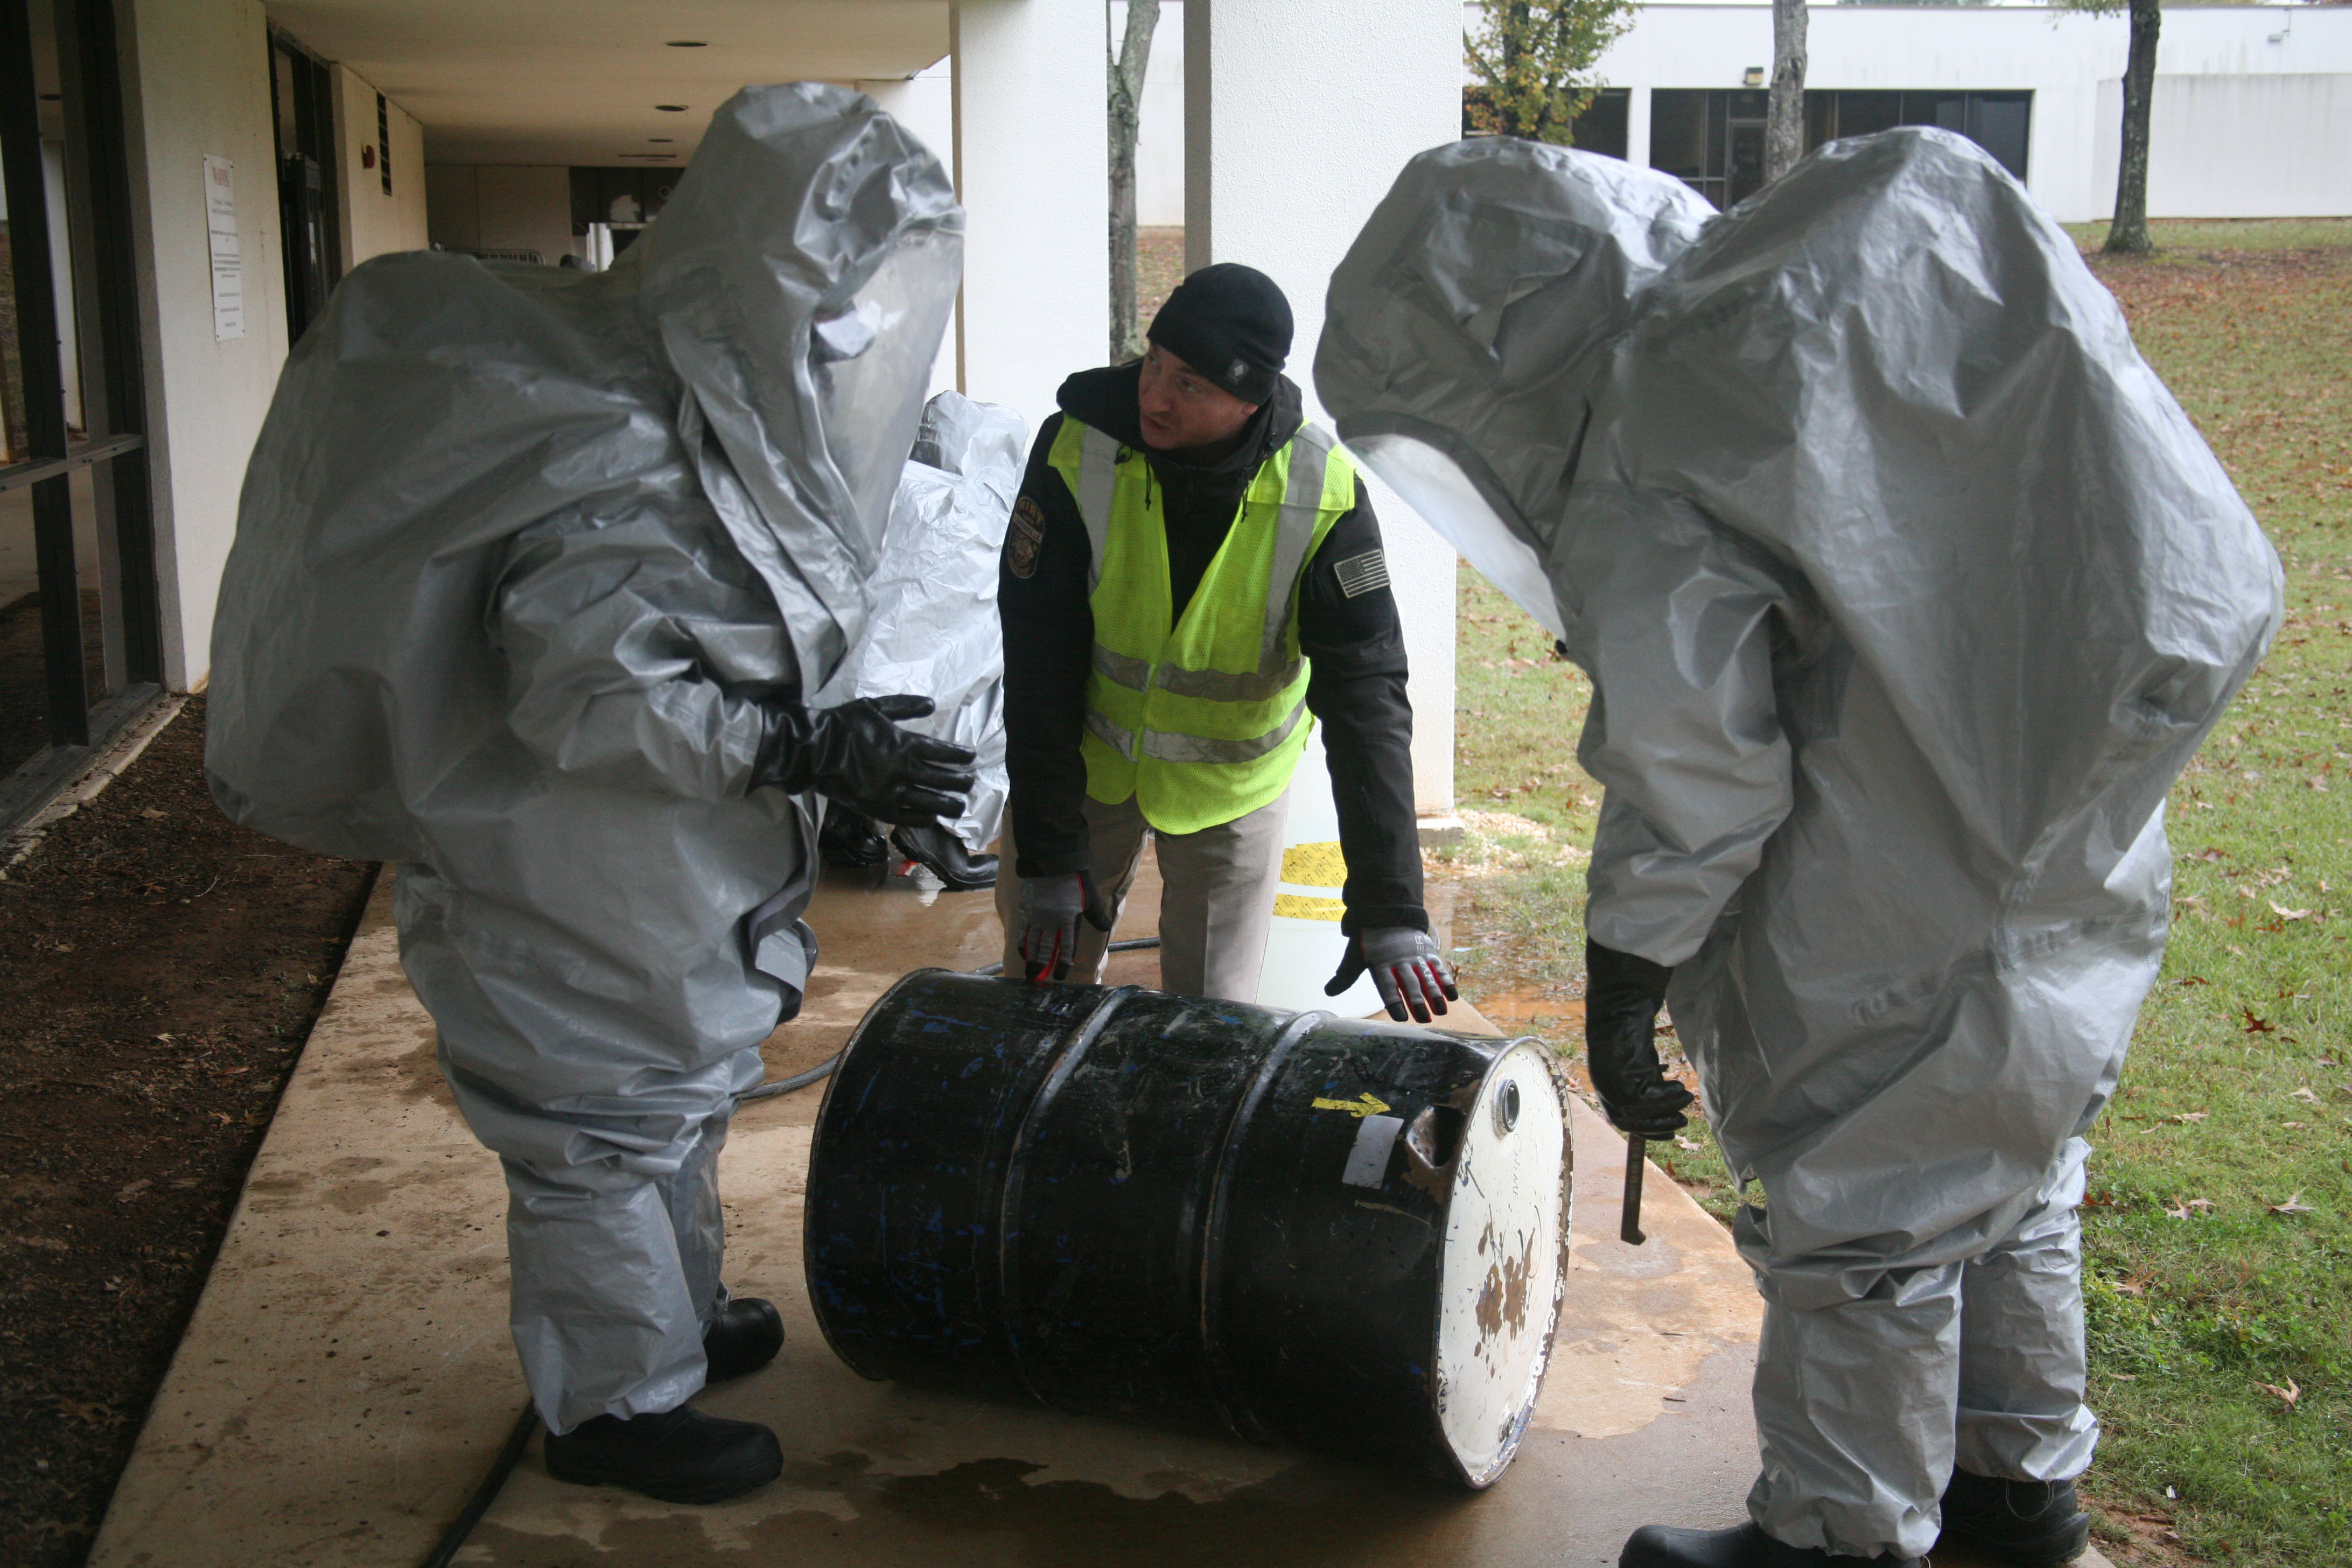 CDP Instructor Jeremy Urekew, center, points out damages on a training barrel to students attending the Hazardous Materials Technician course, noting that punctures in barrels can lead to emissions of both liquid and gaseous hazardous material.